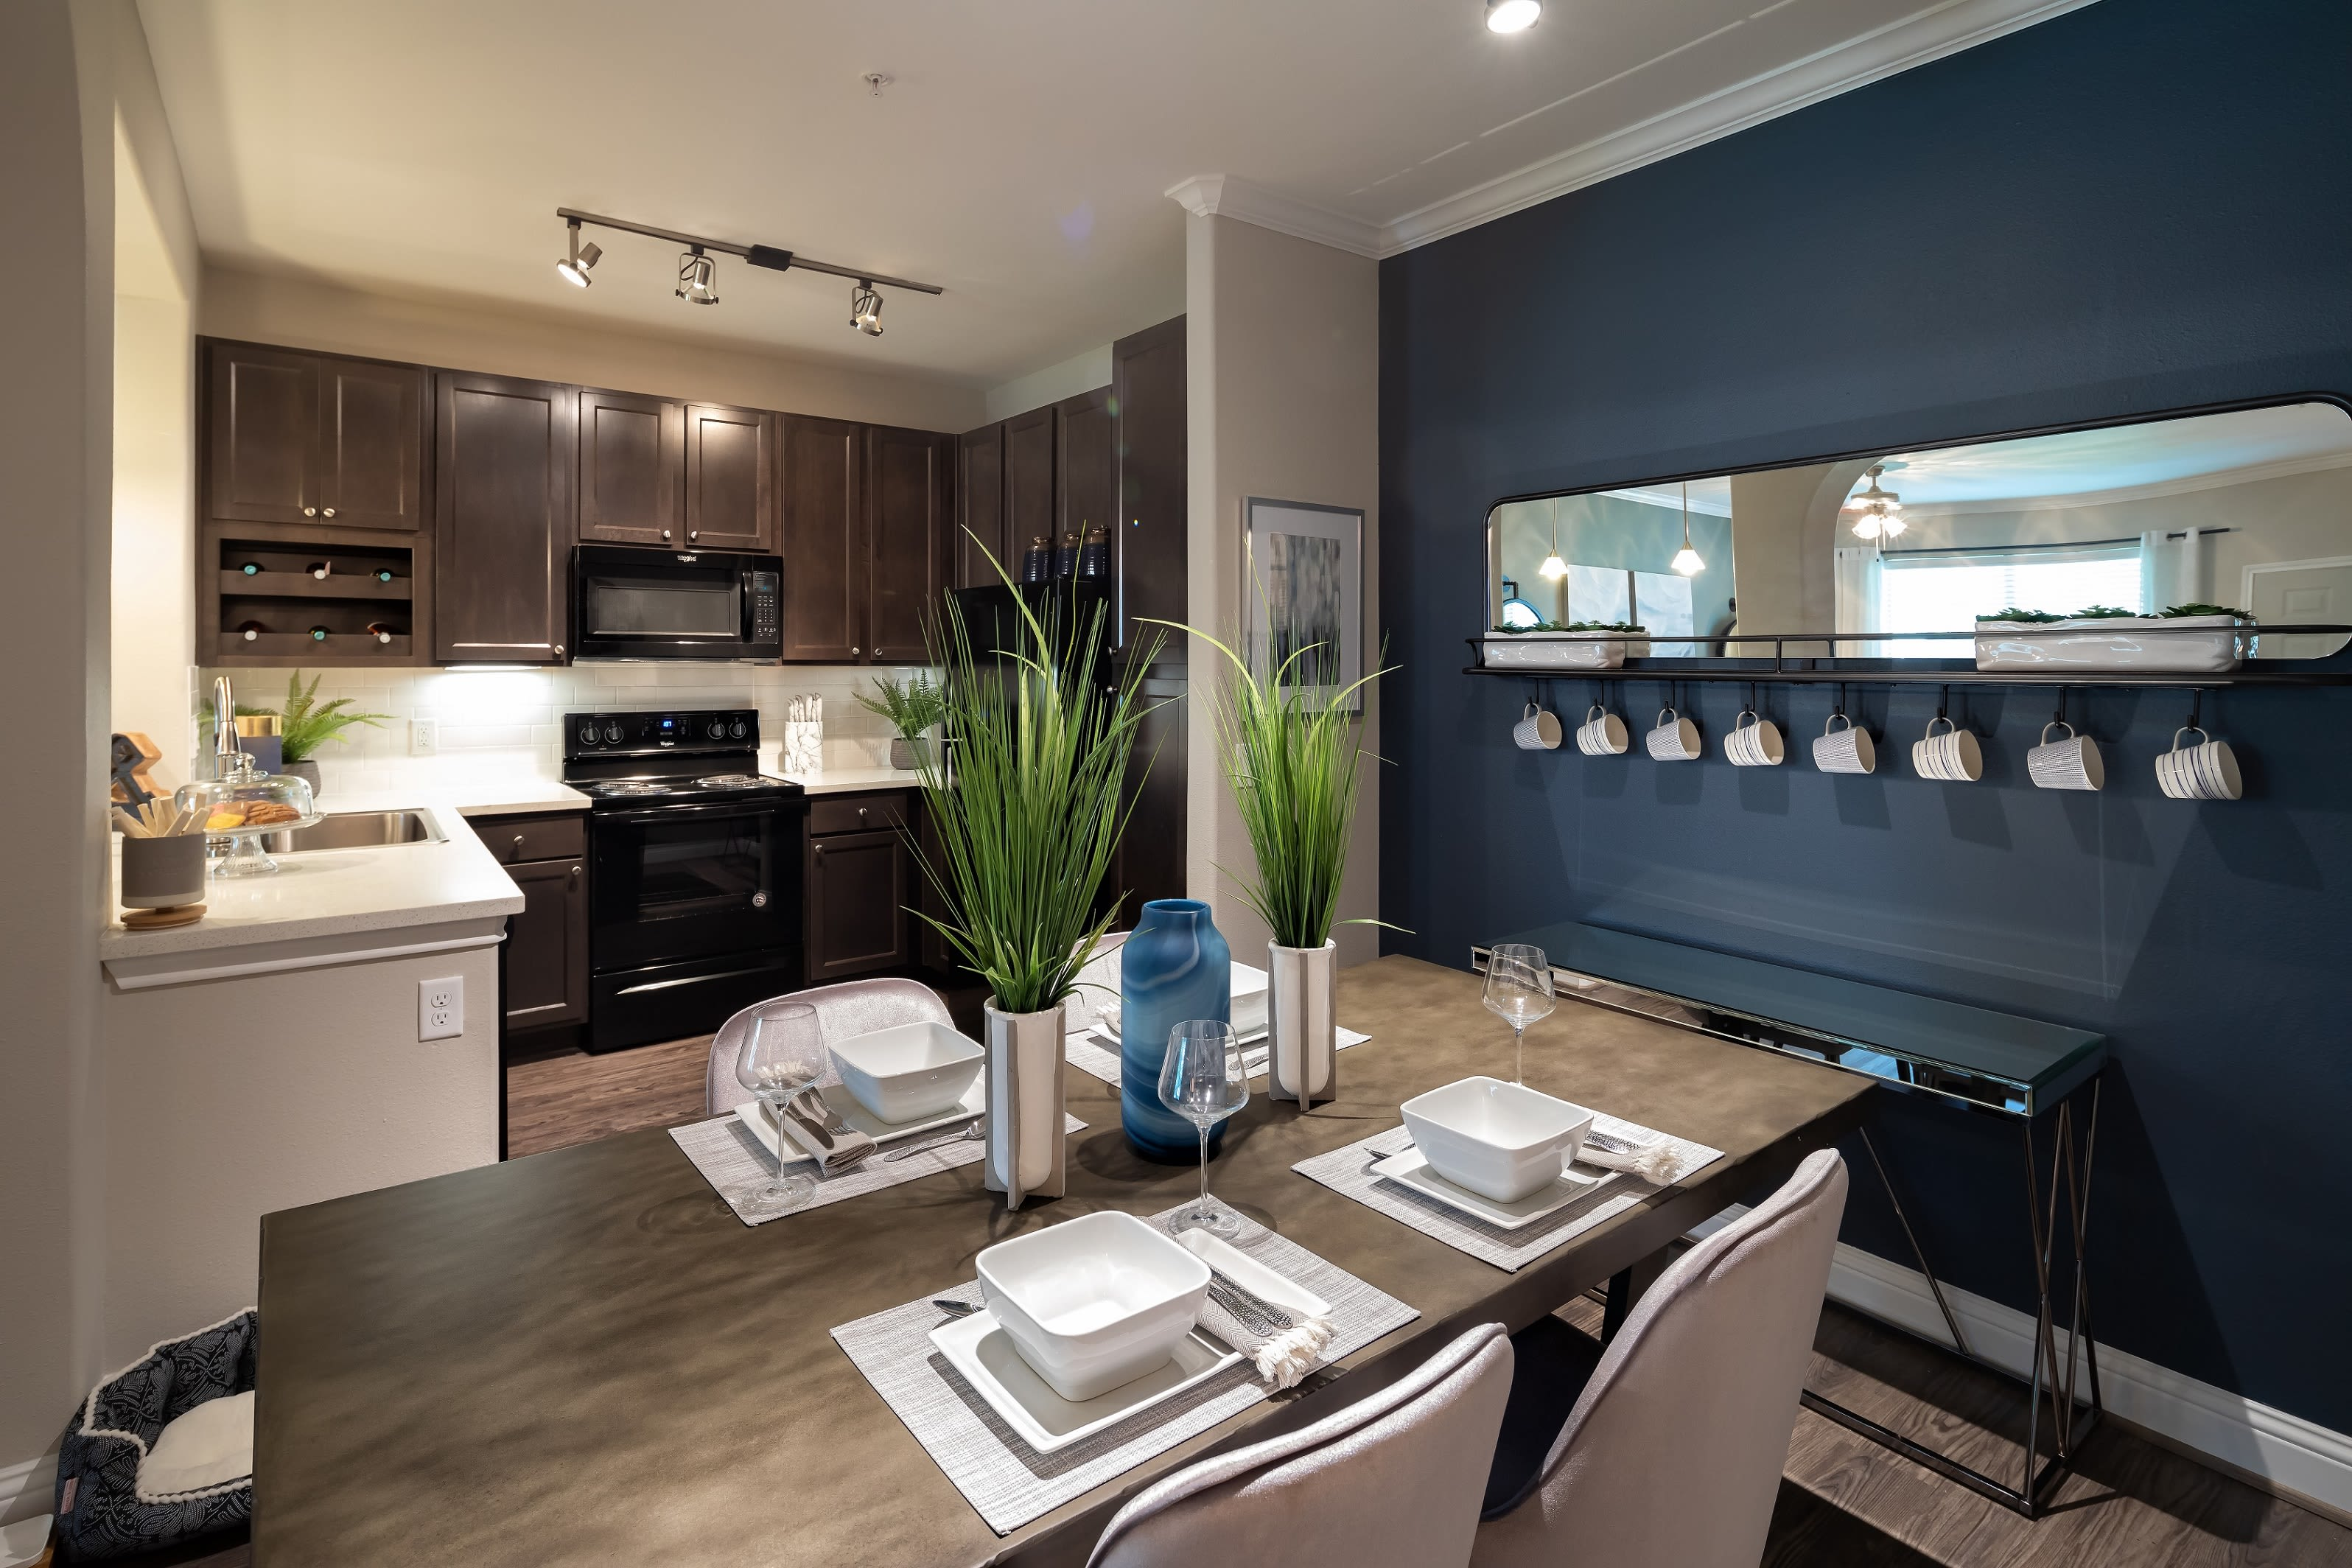 The Retreat at Cinco Ranch offers spacious 1, 2 & 3 bedroom apartments for rent in Katy